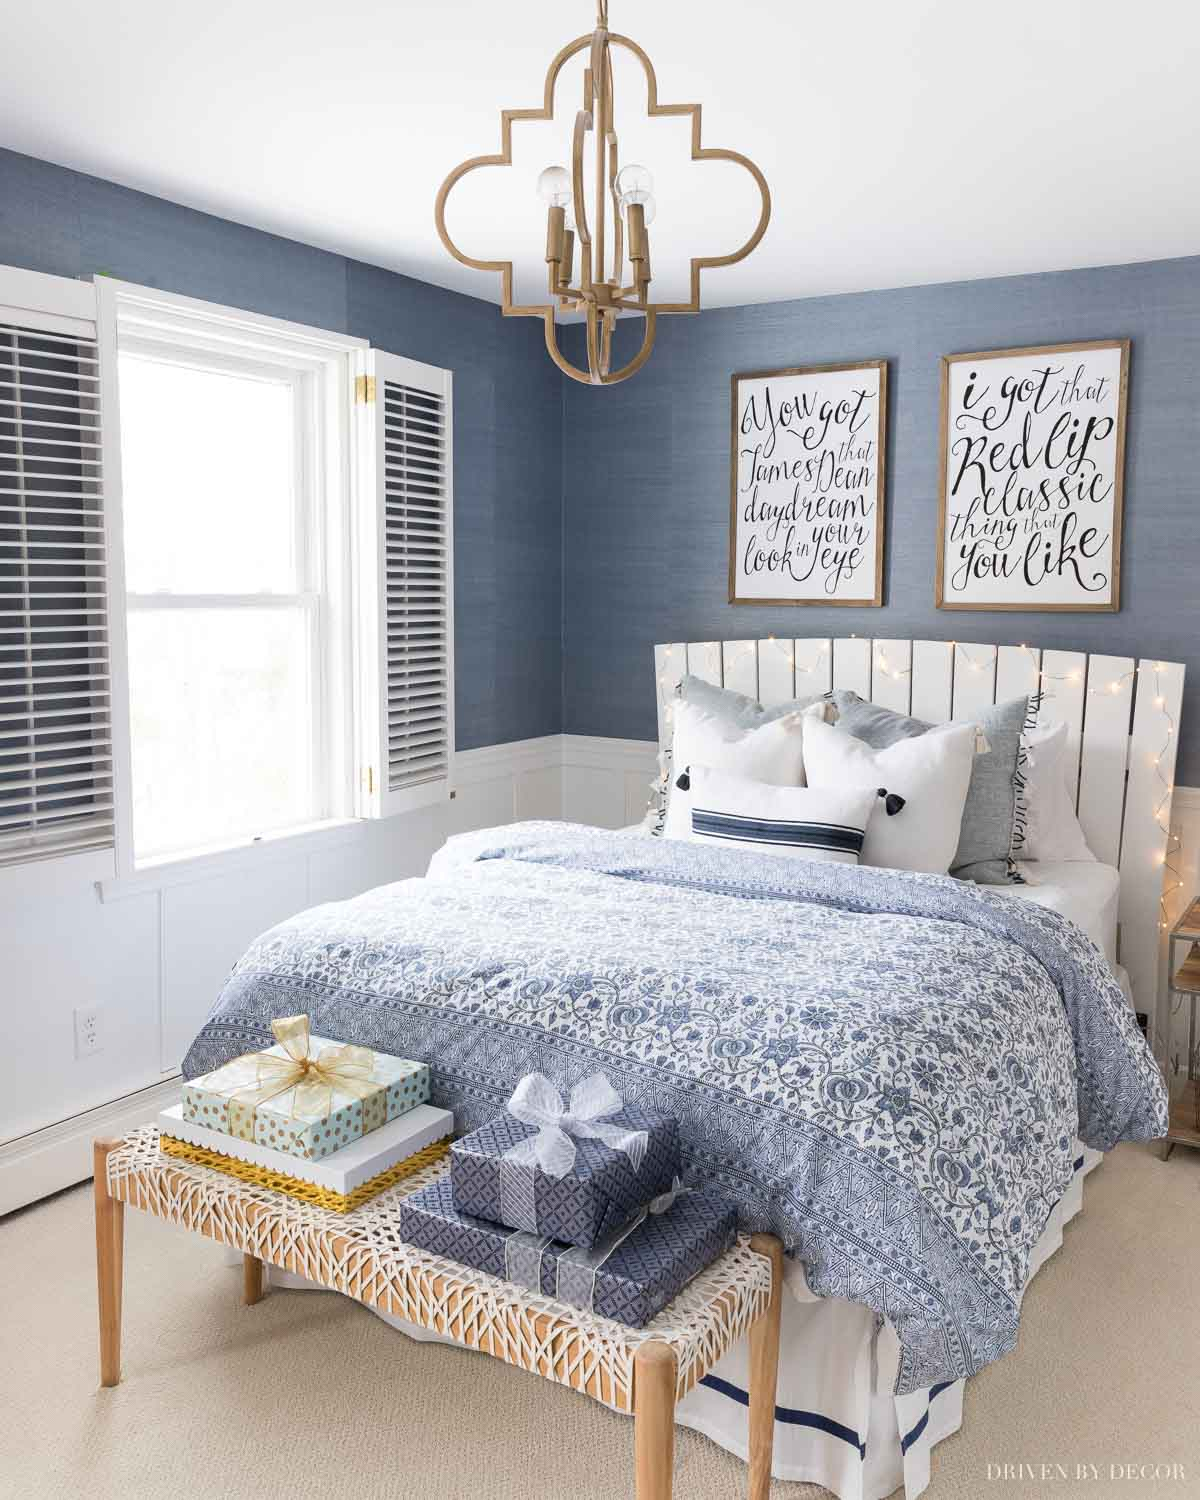 Love this blue and white bedroom at Christmas!